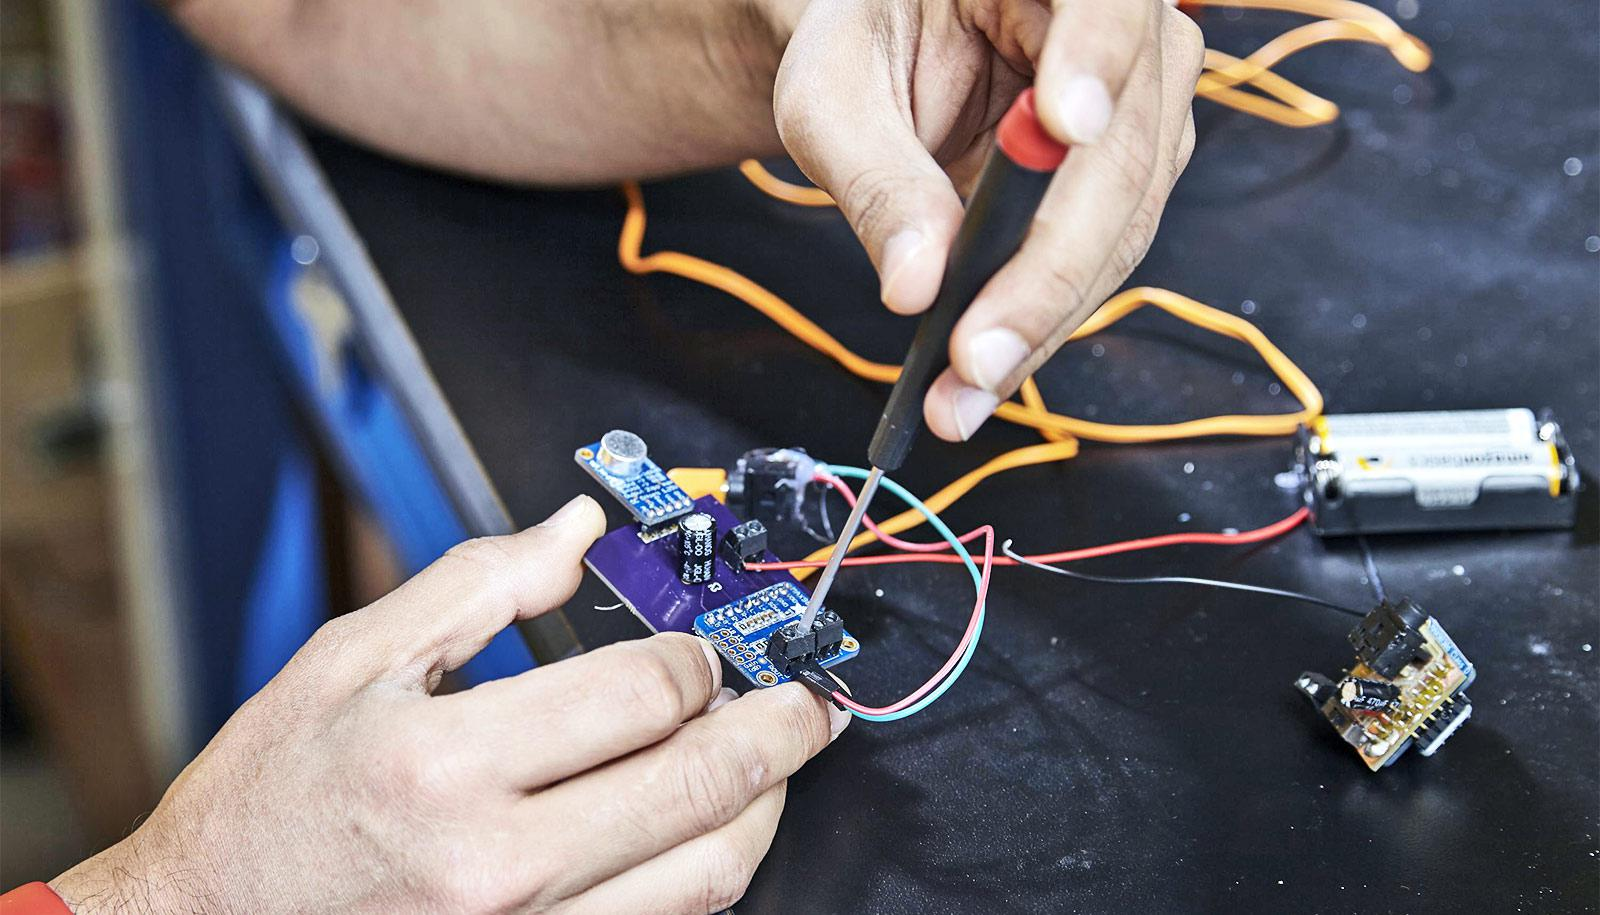 A researcher works on the electronics for the hearing aids